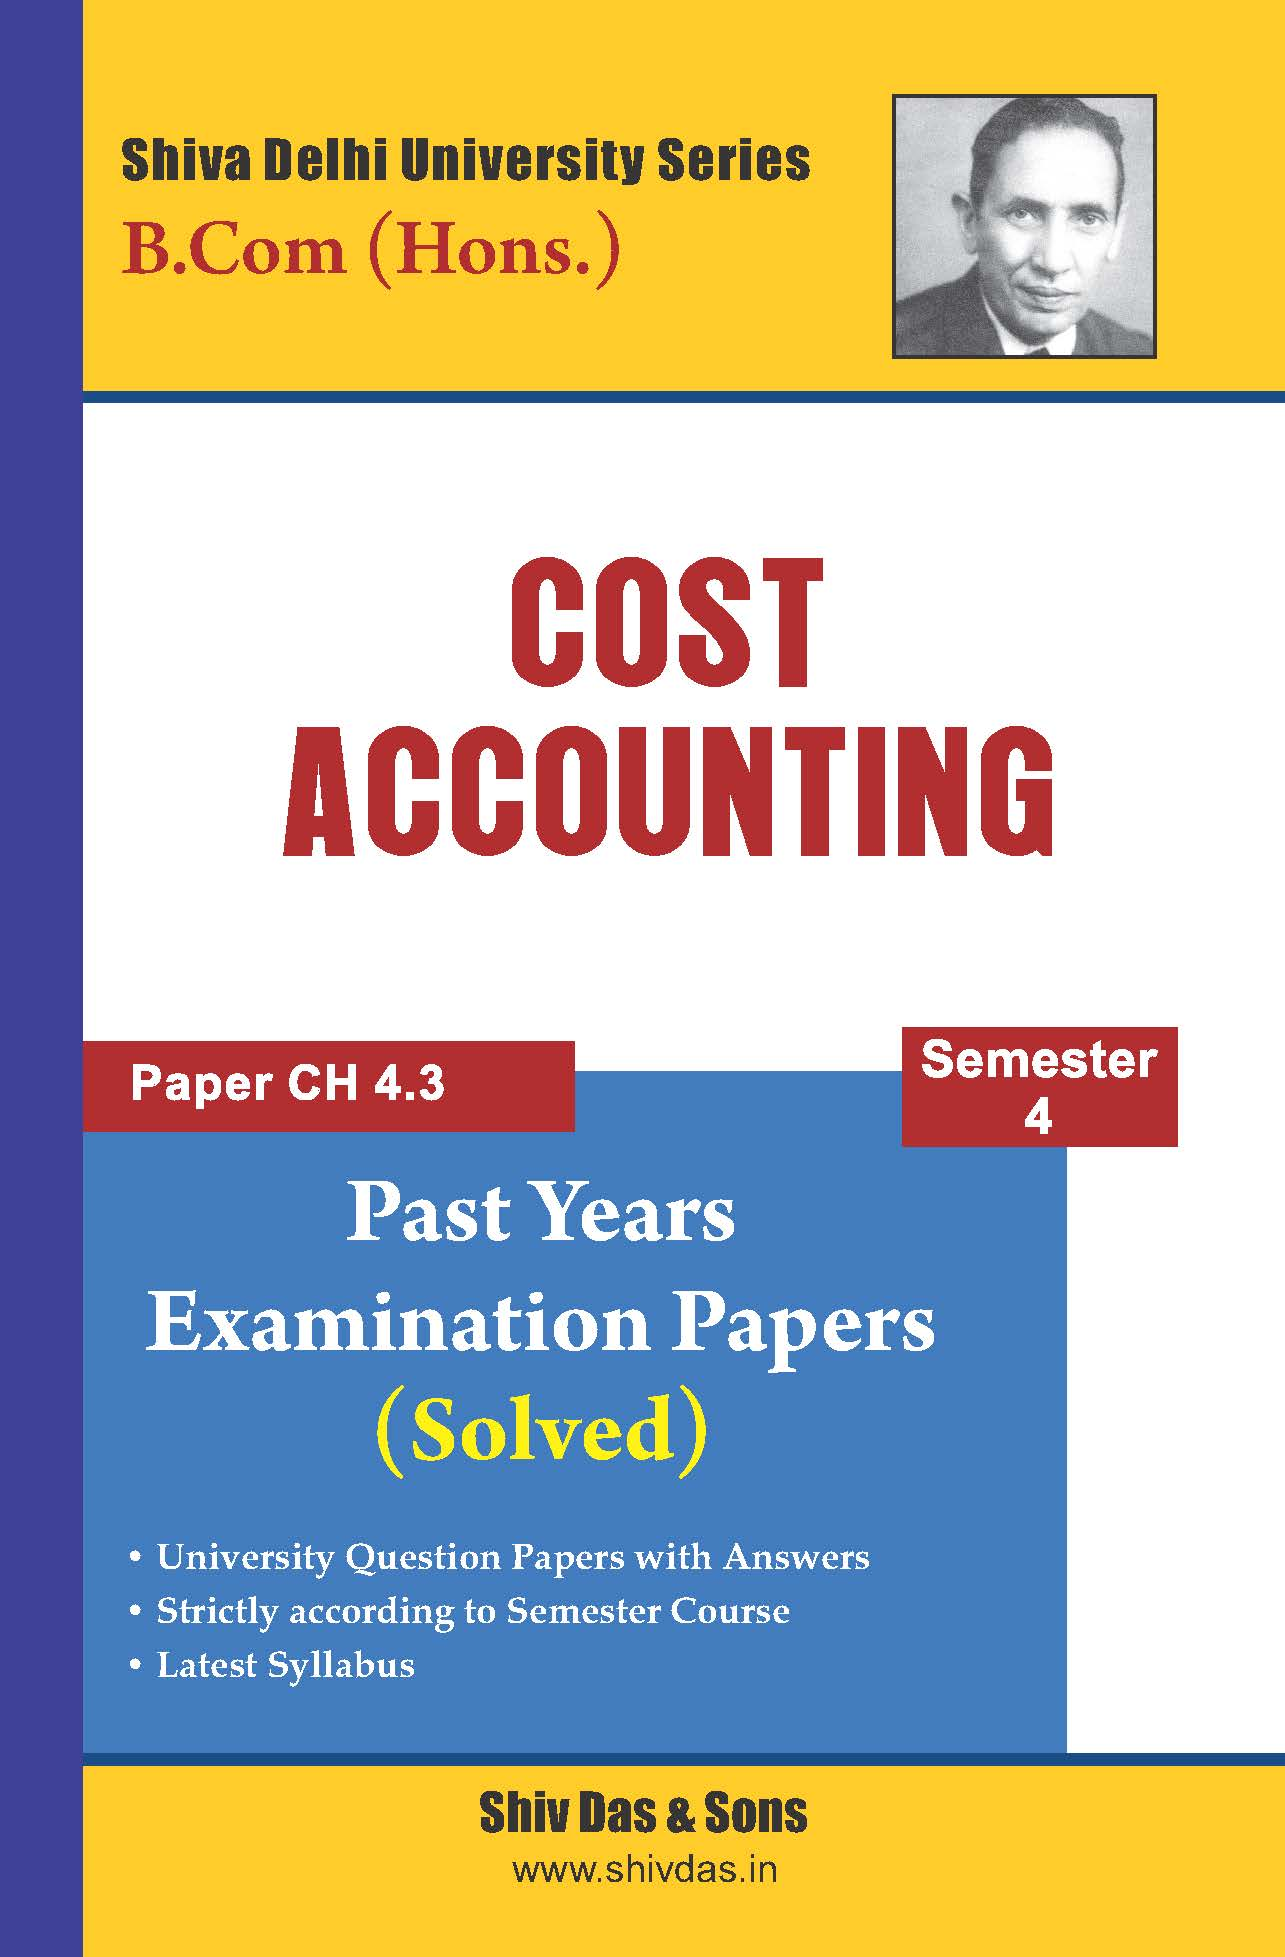 Cost Accounting for B.Com Hons. Semester- 4